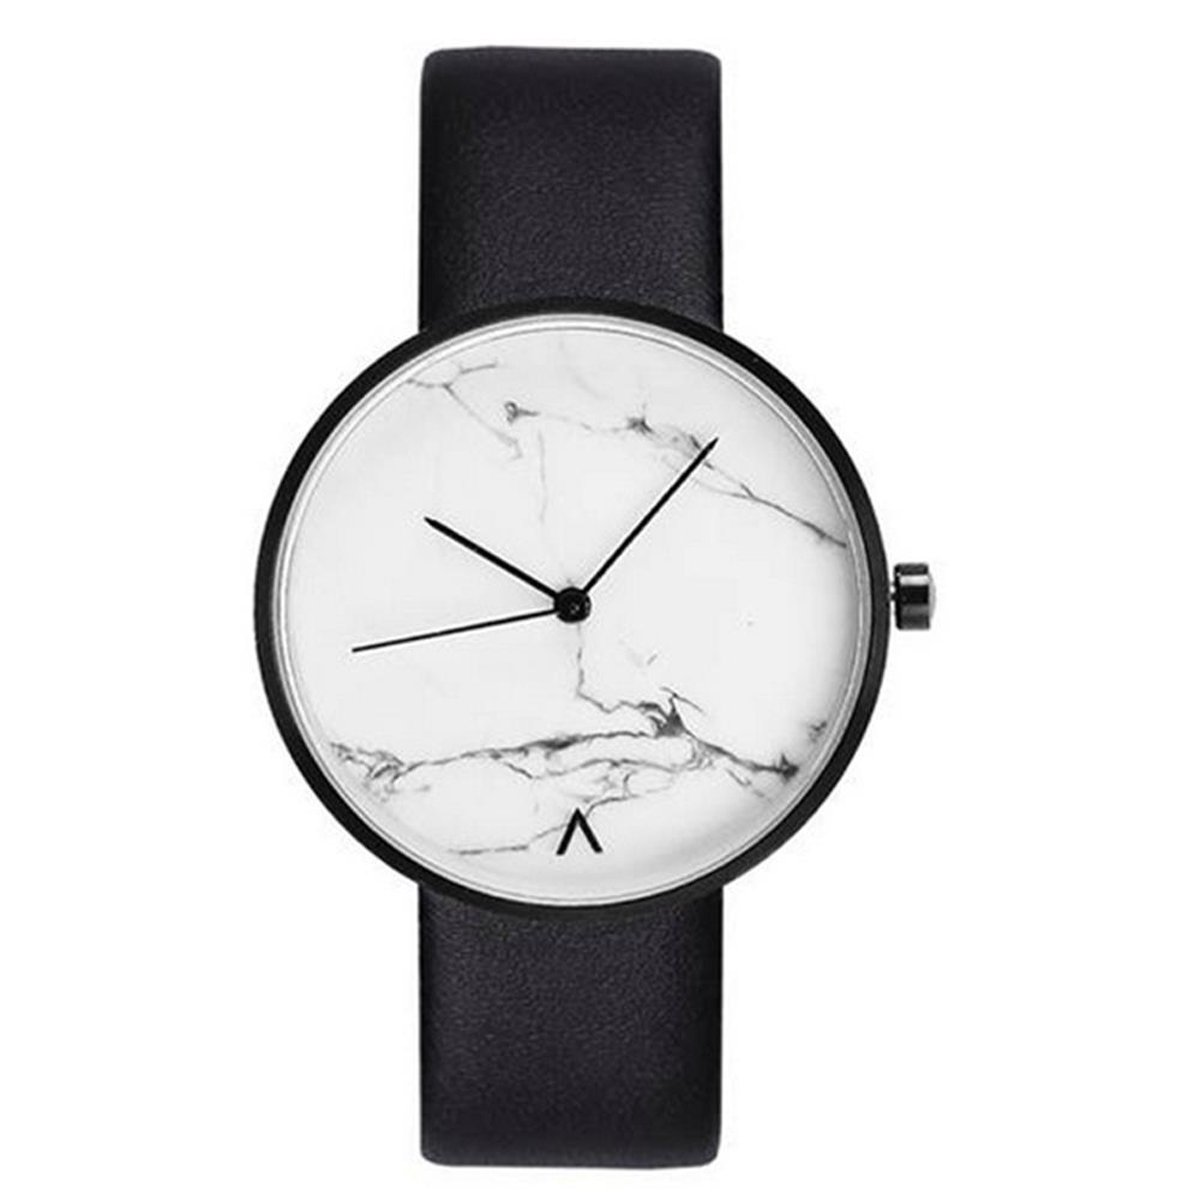 Unisex Men Women Watch Quartz Movement Couple Watches Marble Cover Dial Genuine leather Strap Boy Girl Watches Casual Students Wristwatch (White)